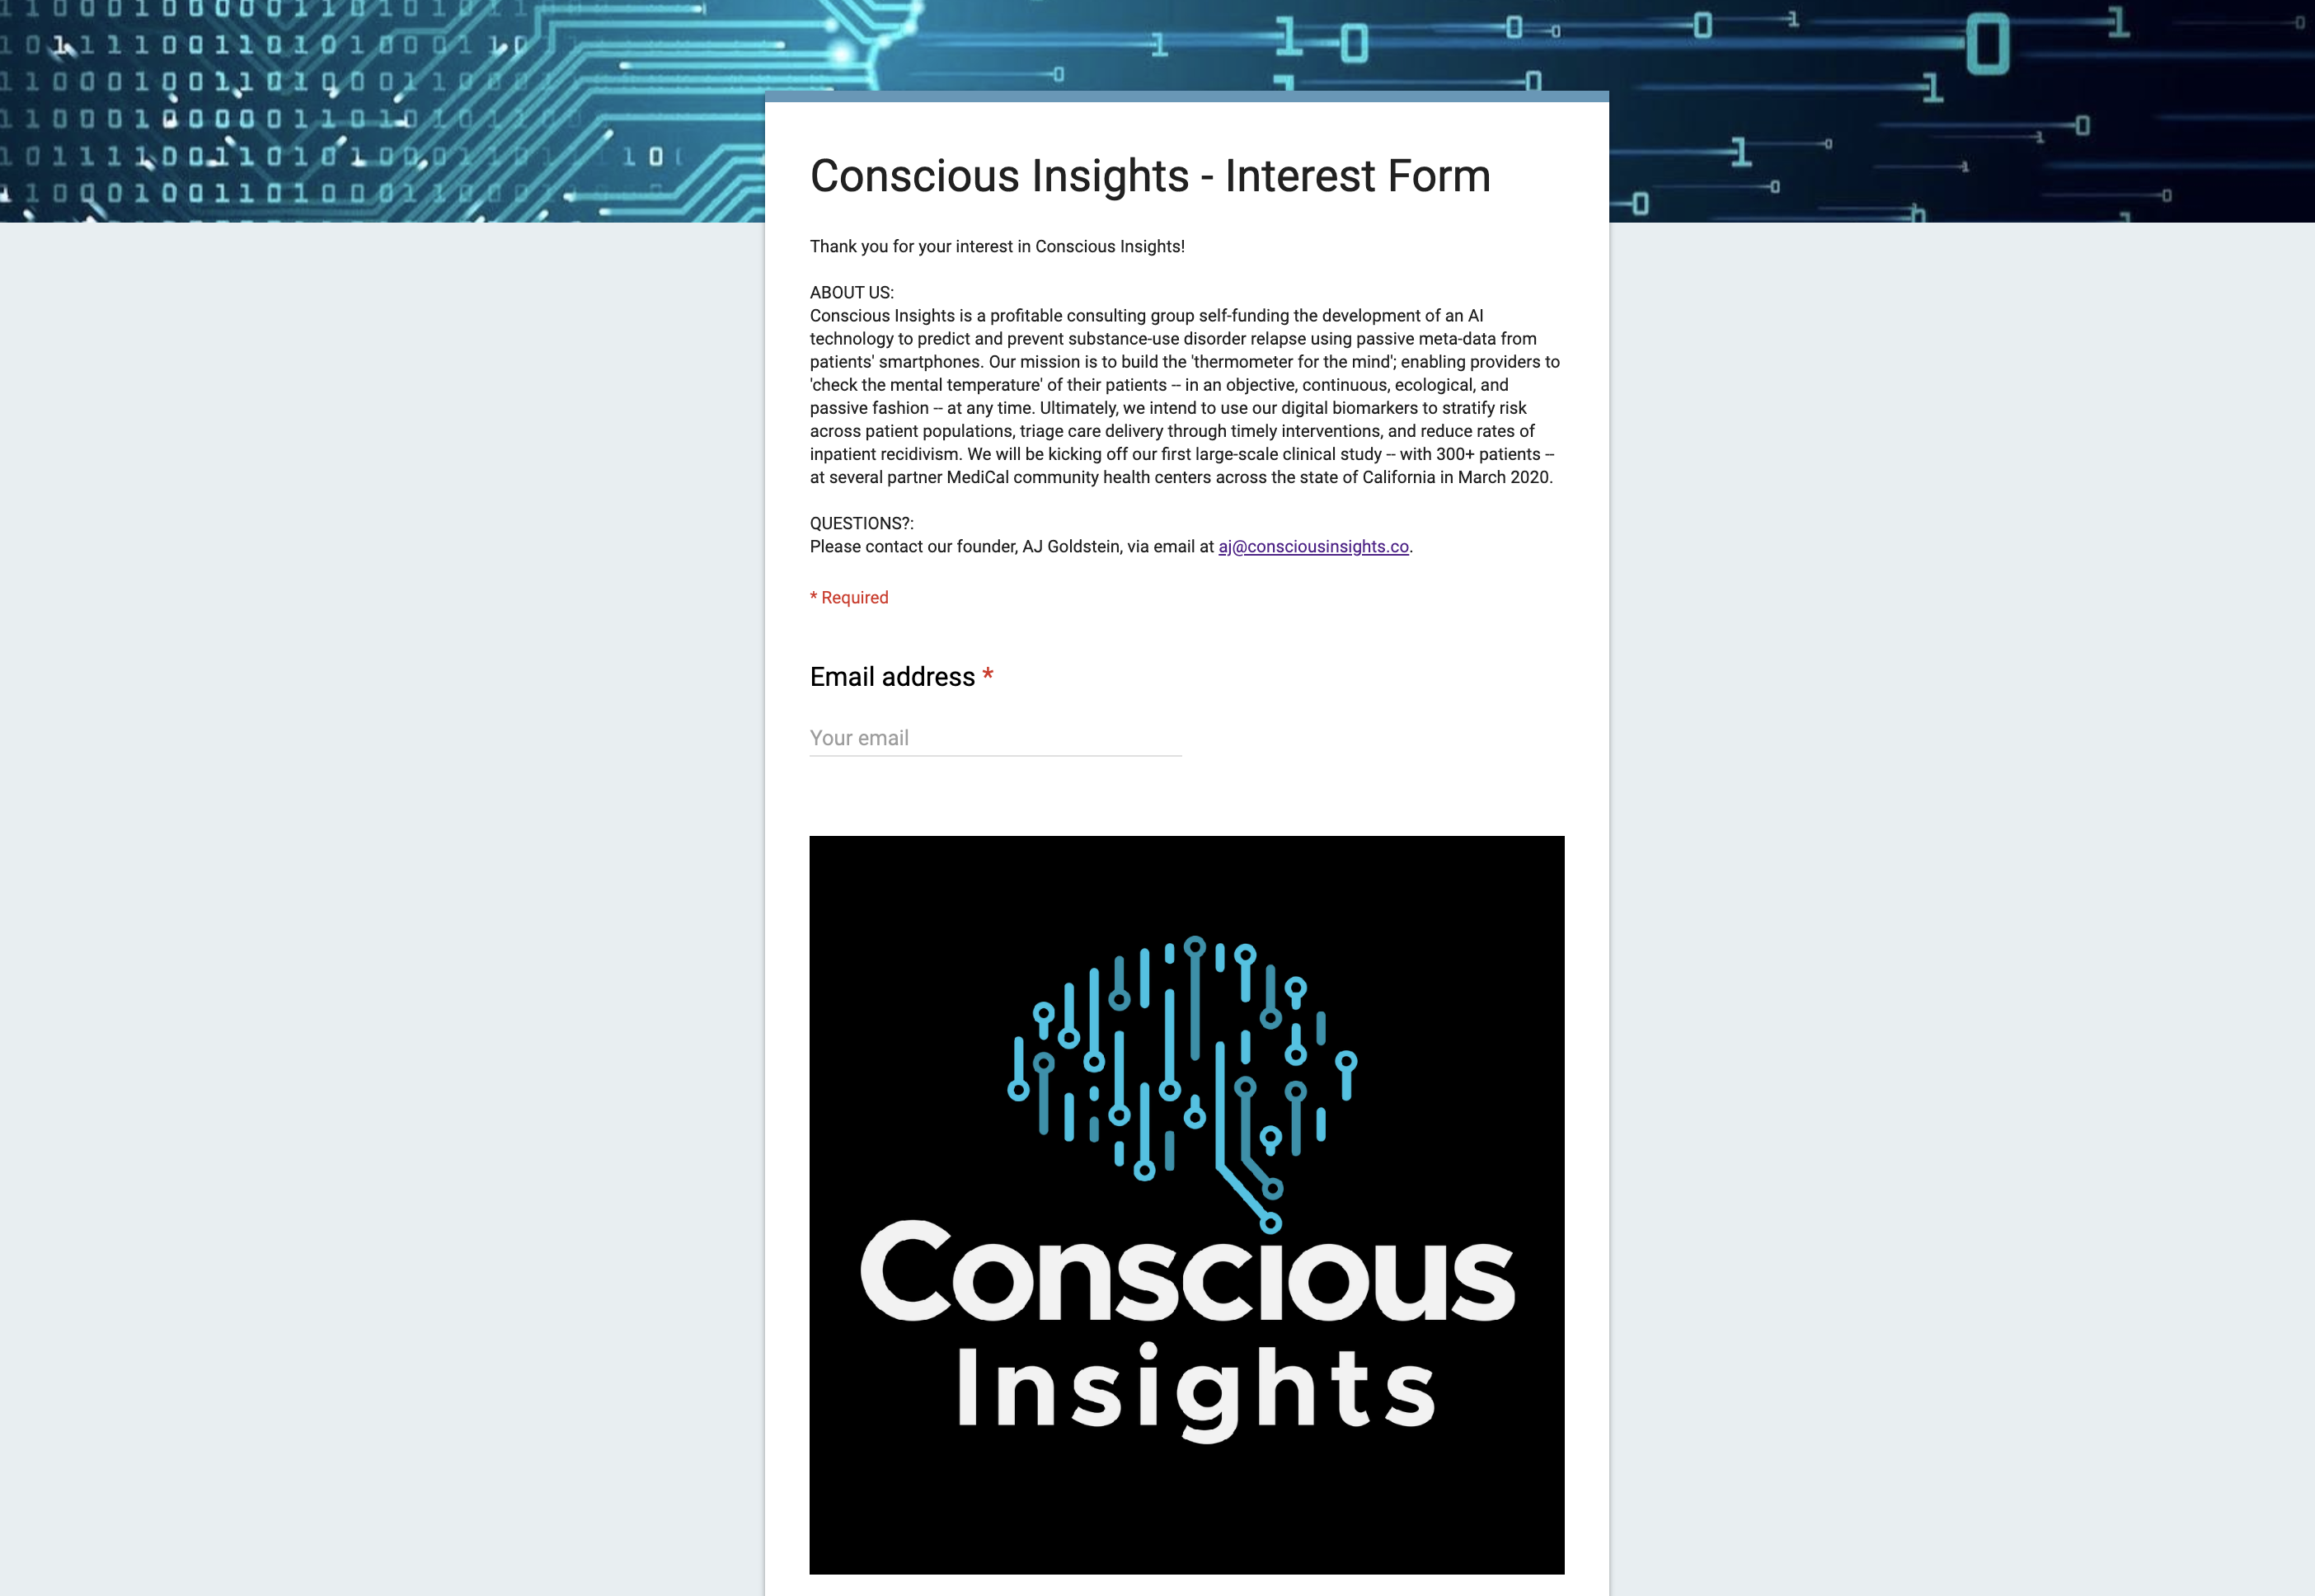 Conscious Insights - Interest Form